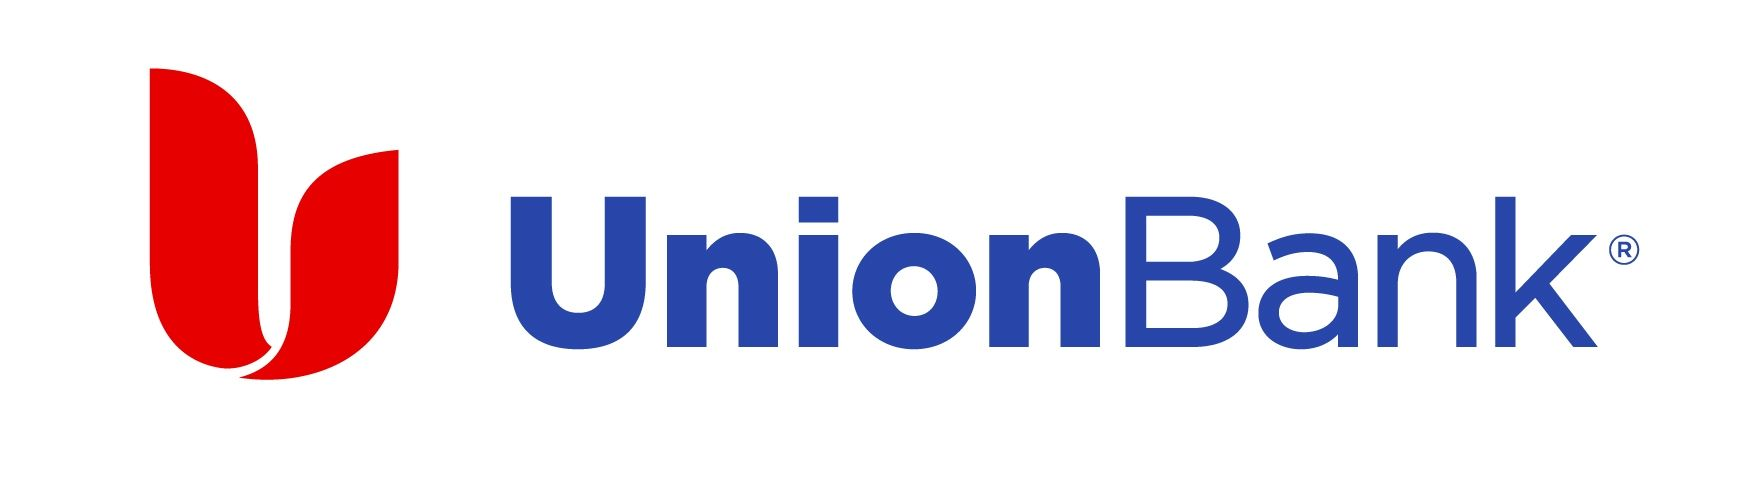 Union Bank 9460 Wilshire Blvd Beverly Hills Ca 90212 310 550 6522 Online Banking Banking Services Union Bank Logo